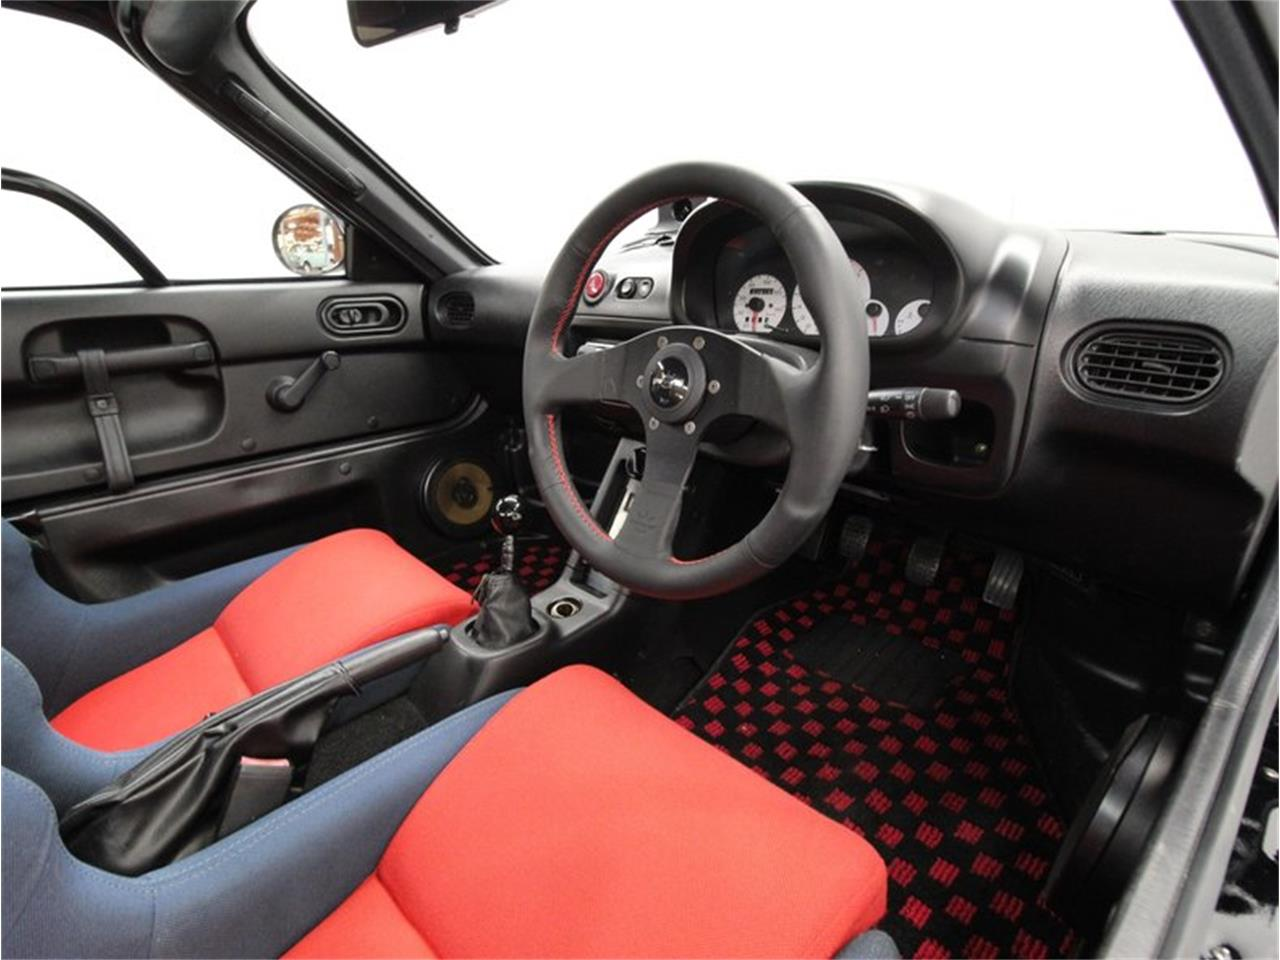 1993 Autozam AZ-1 (CC-1378720) for sale in Christiansburg, Virginia